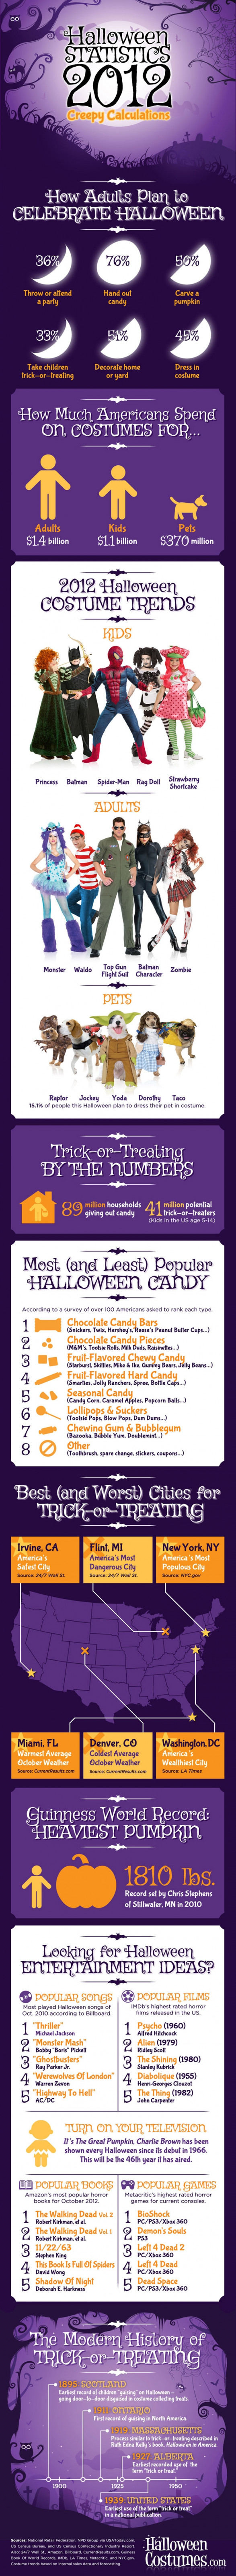 Halloween Statistics 2012: Creepy Calculations